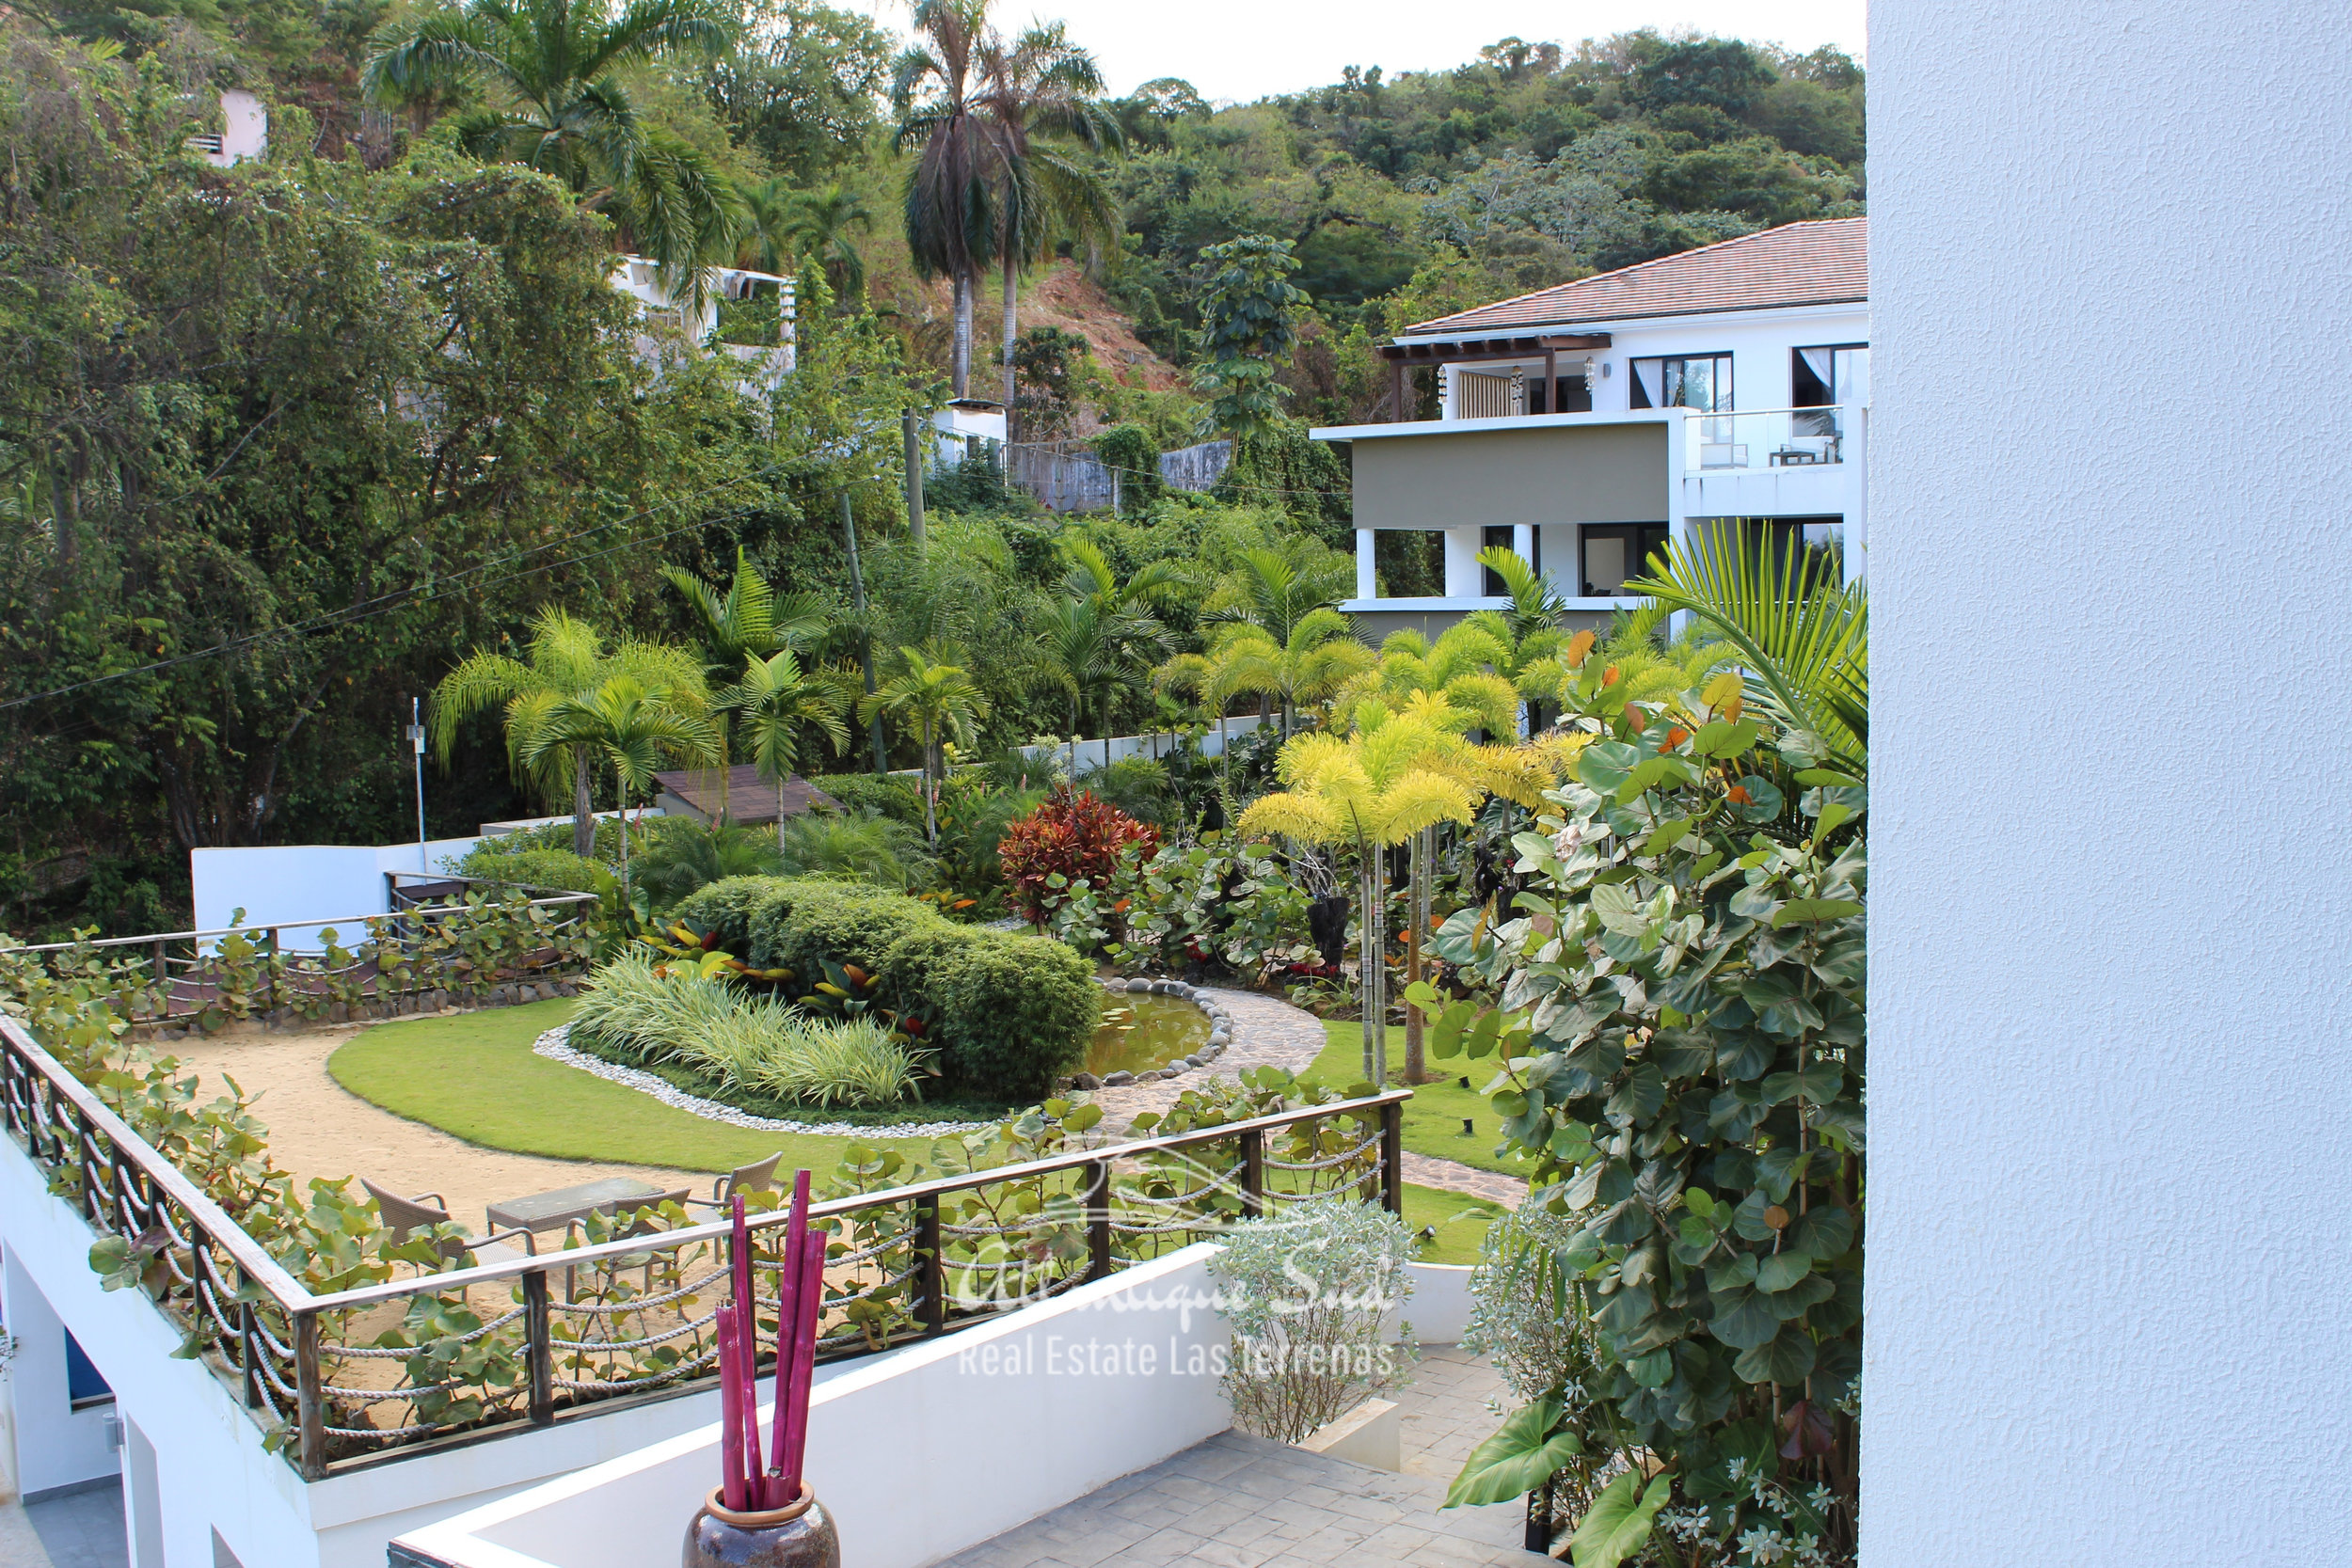 Cozy-1-bedroom-apartment-in-gated-community-close-to-the-center-of-lasterrenas10.jpg